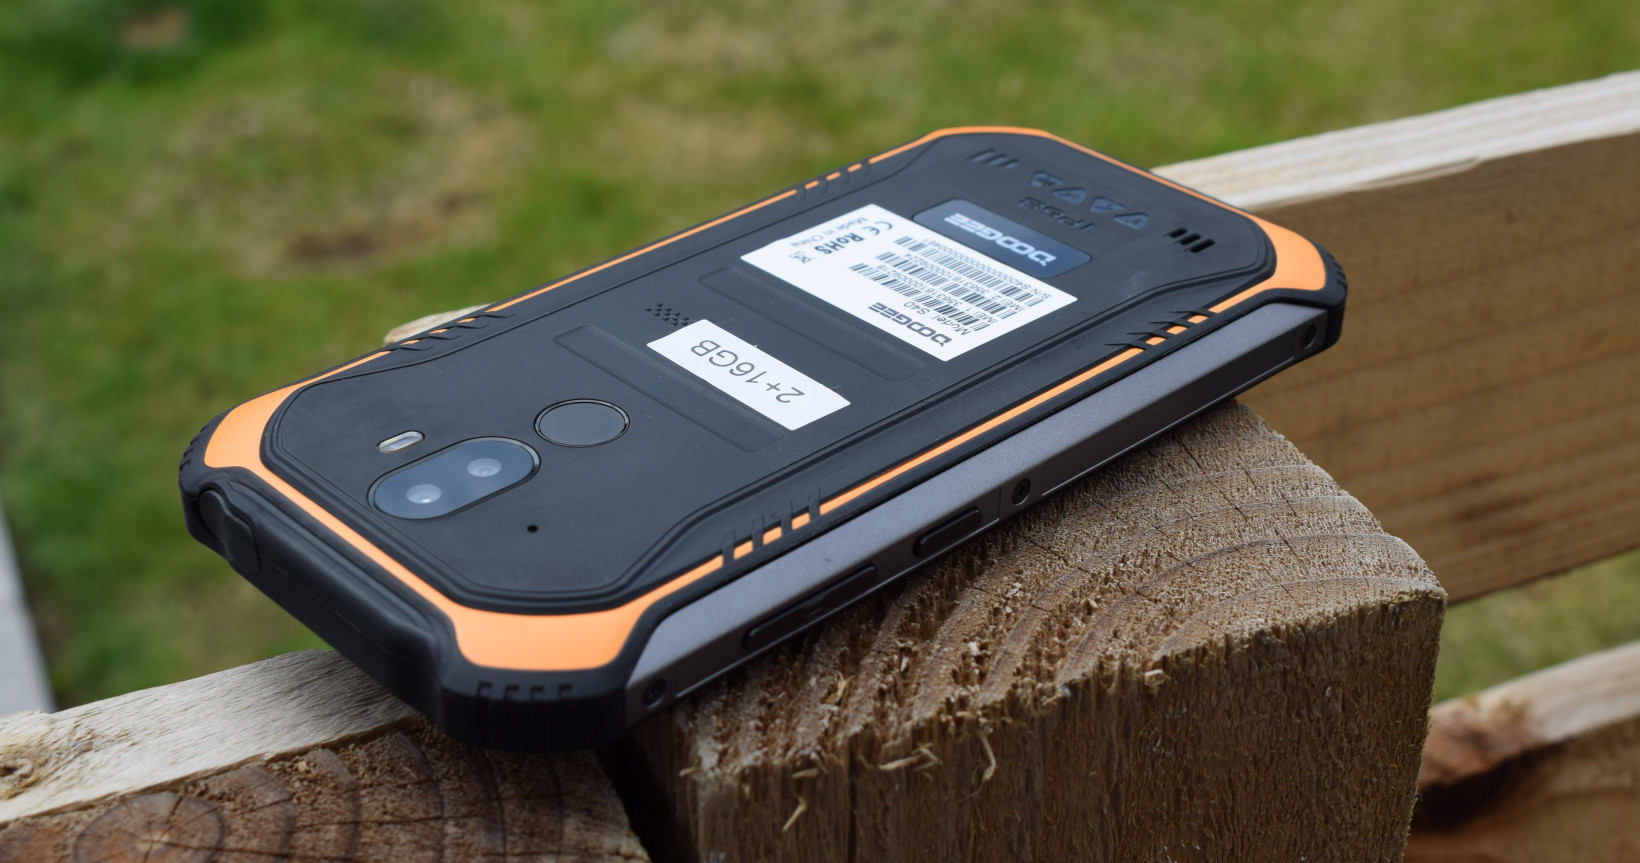 Review: The Doogee S40 is a rugged phone you'll want to break (cause it's crap)